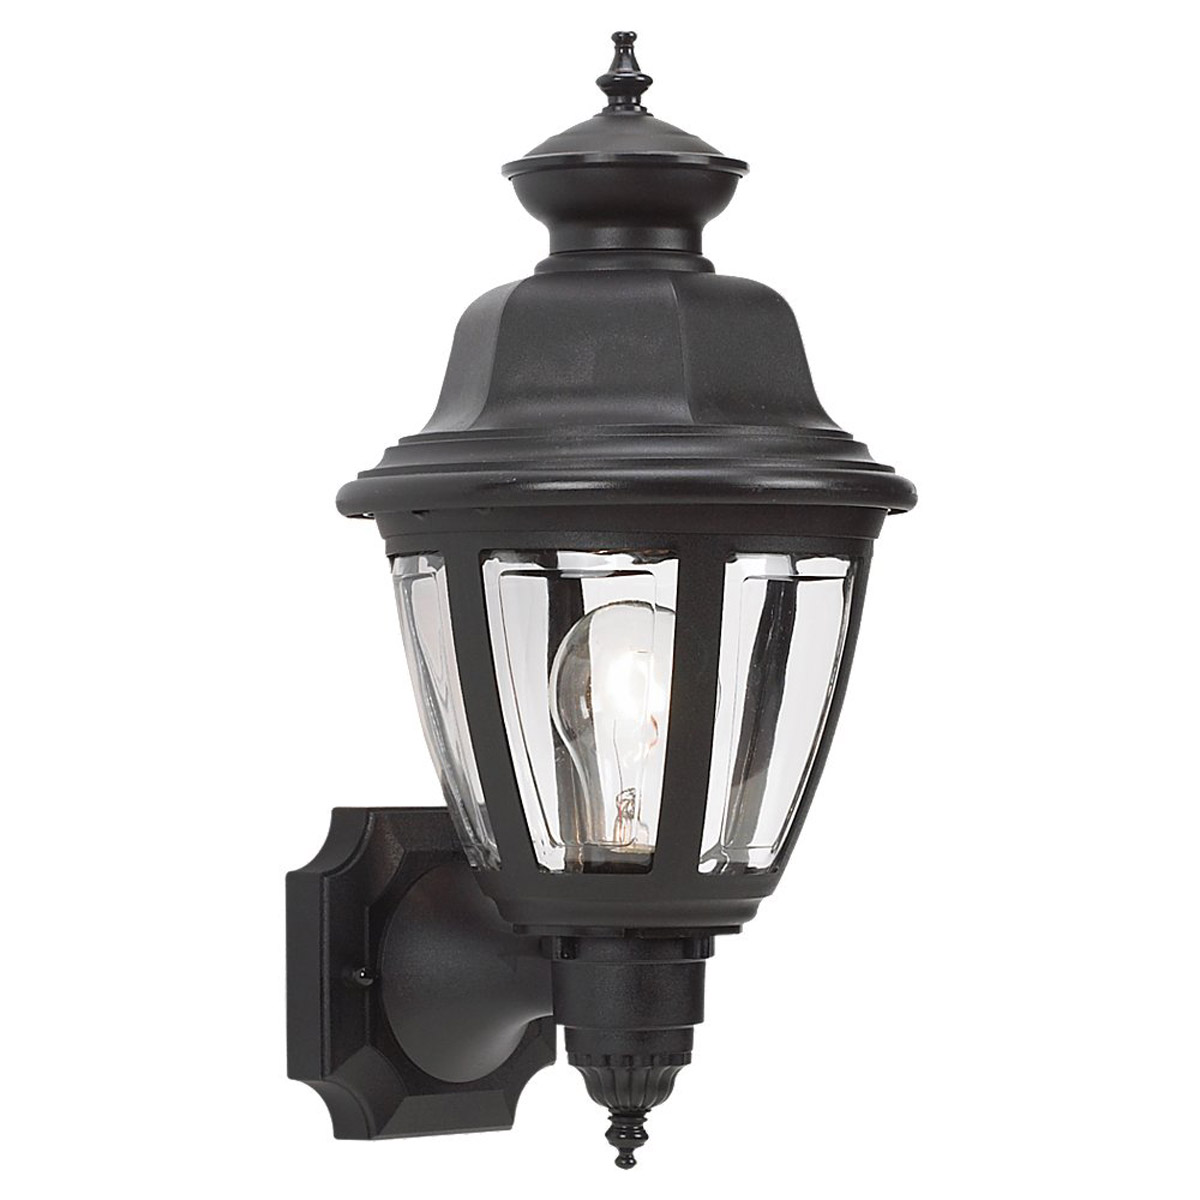 Sea Gull Lighting Belmar 1 Light Outdoor Wall Lantern in Black 88092-12